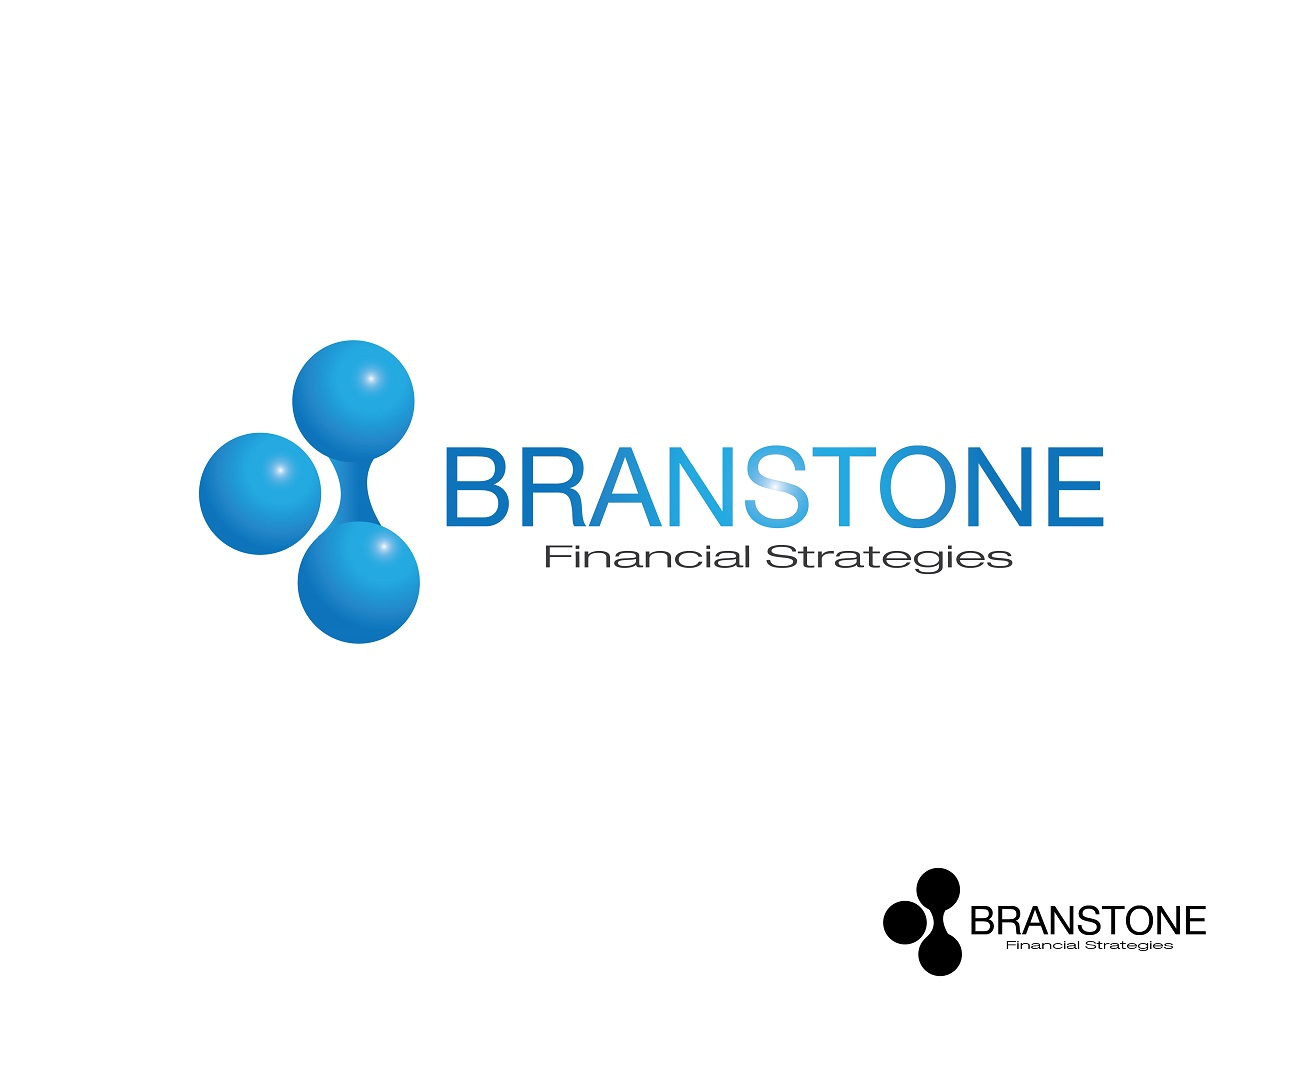 Logo Design by jhunzkie24 - Entry No. 270 in the Logo Design Contest Inspiring Logo Design for Branstone Financial Strategies.